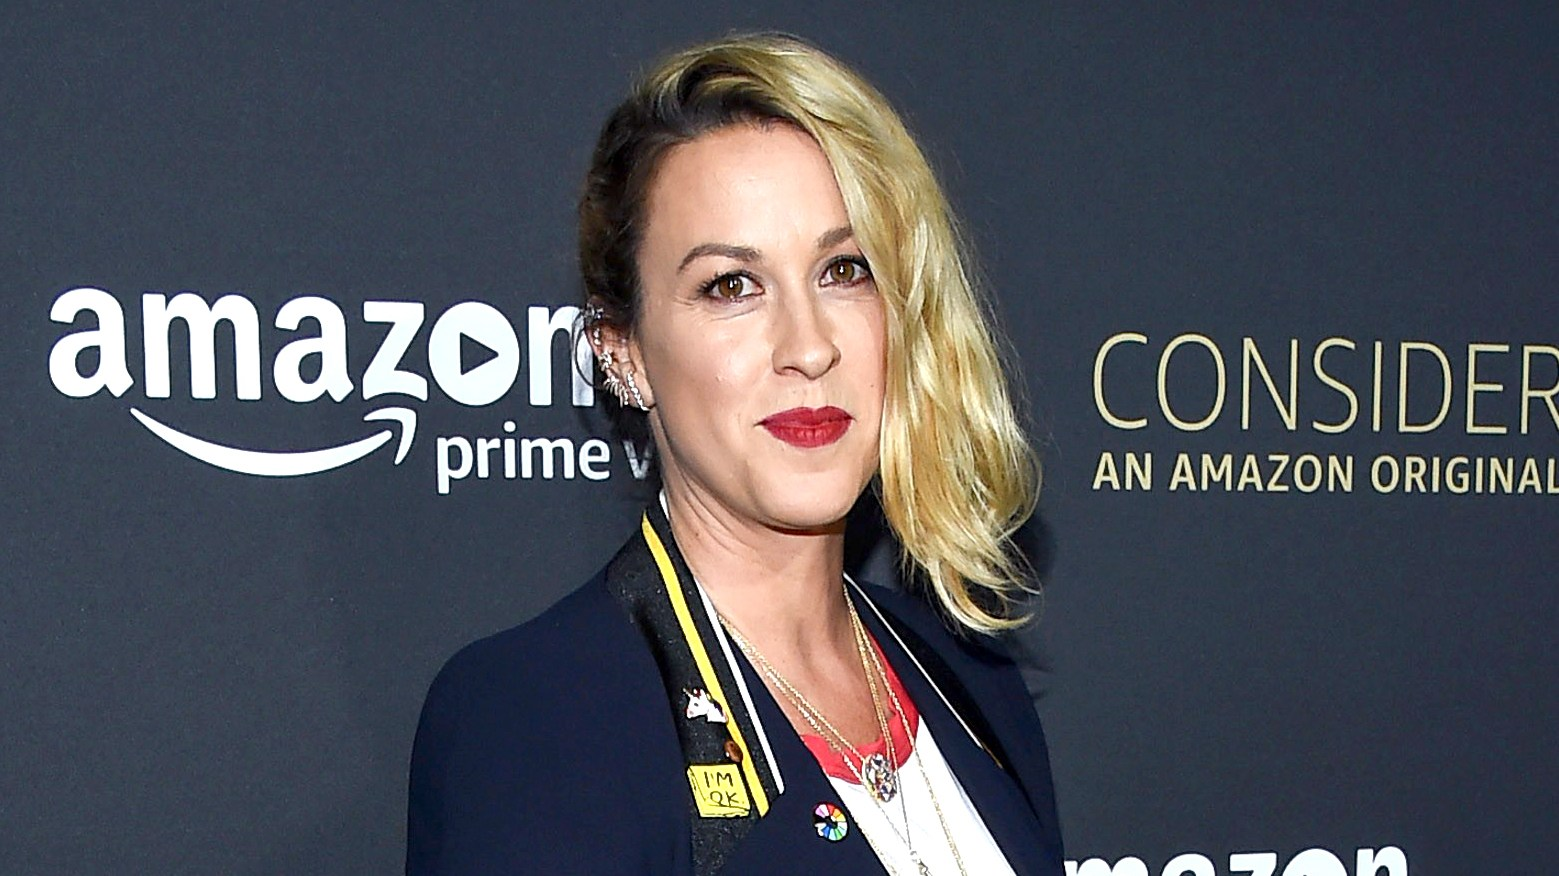 Alanis Morissette arrives at the FYC event for Amazon Video's 'Transparent' held at the Hollywood Athletic Club in Hollywood, California on April 22, 2017.